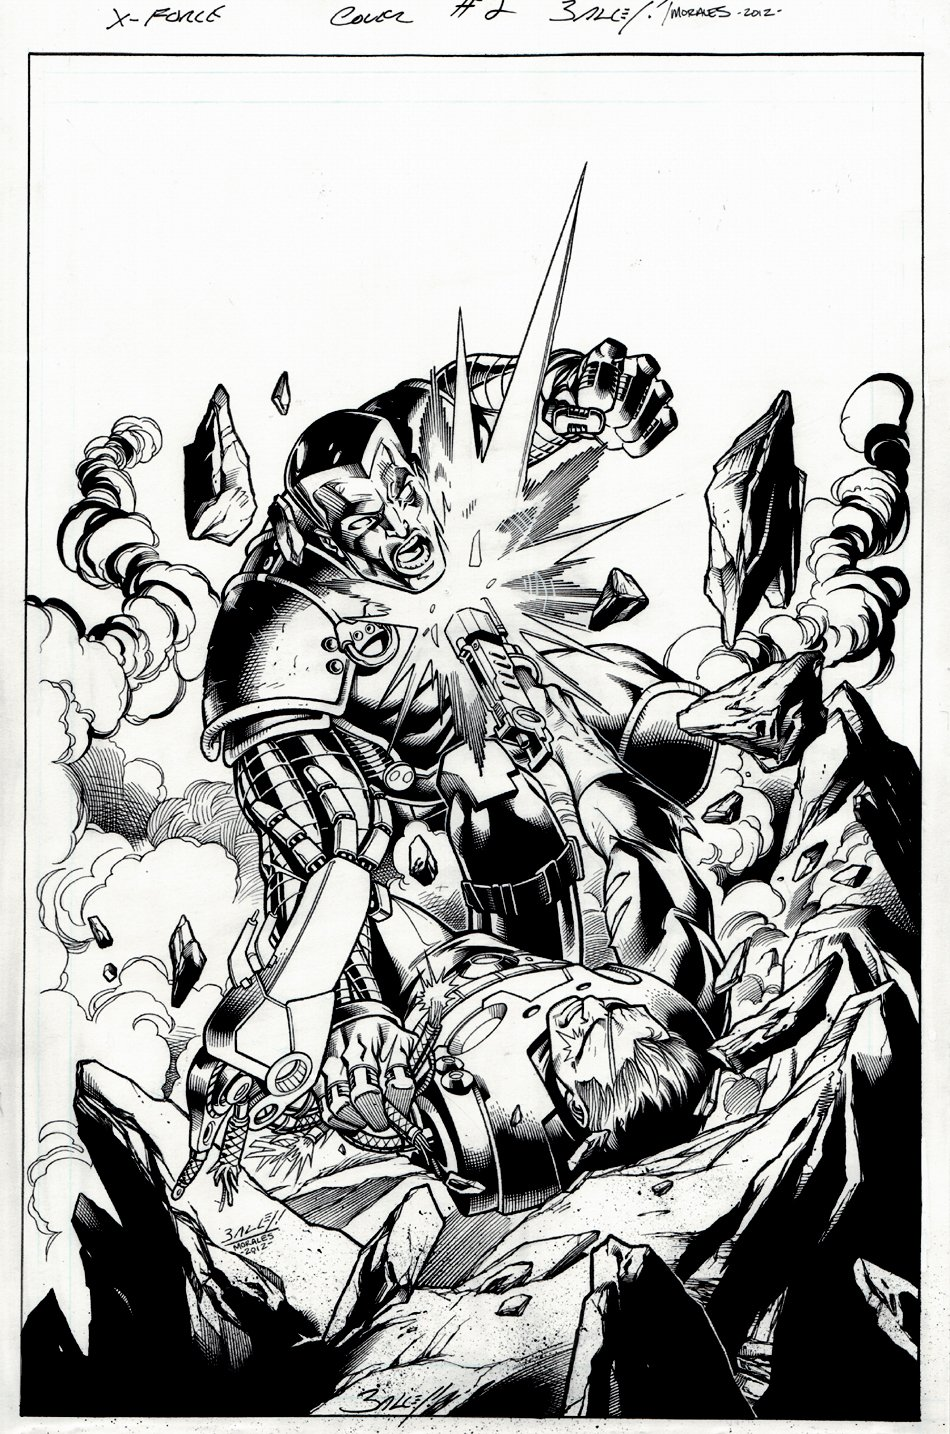 Cable and X-Force #2 Cover (2012)